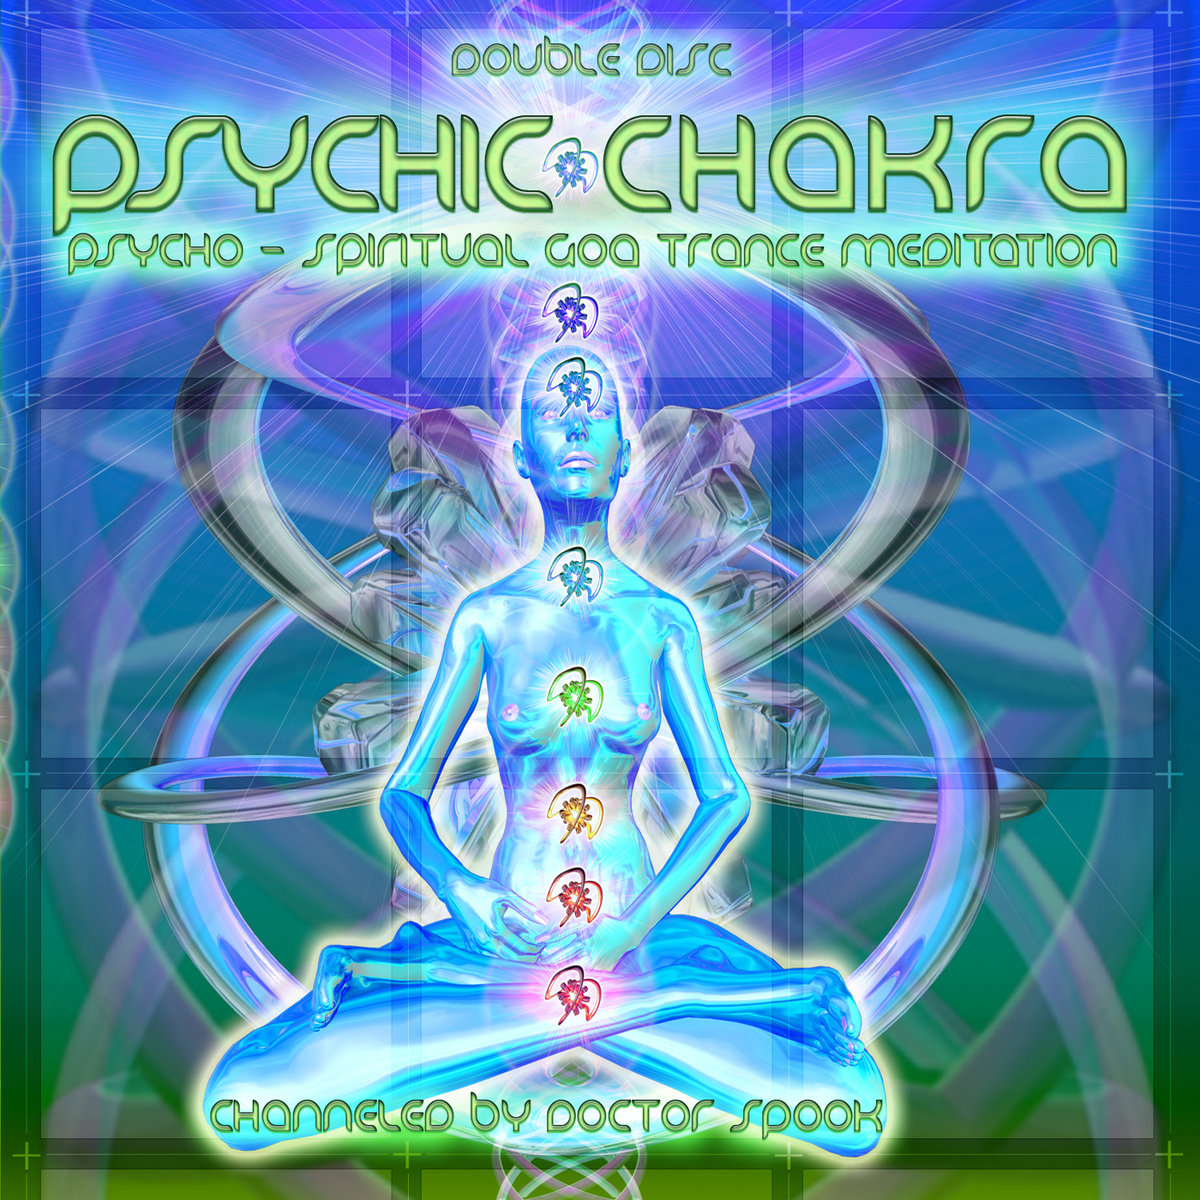 Twisted Reaction - Mutant Community @ 'Various Artists - Psychic Chakra (Channeled by Dr. Spook)' album (electronic, psychic chakra)